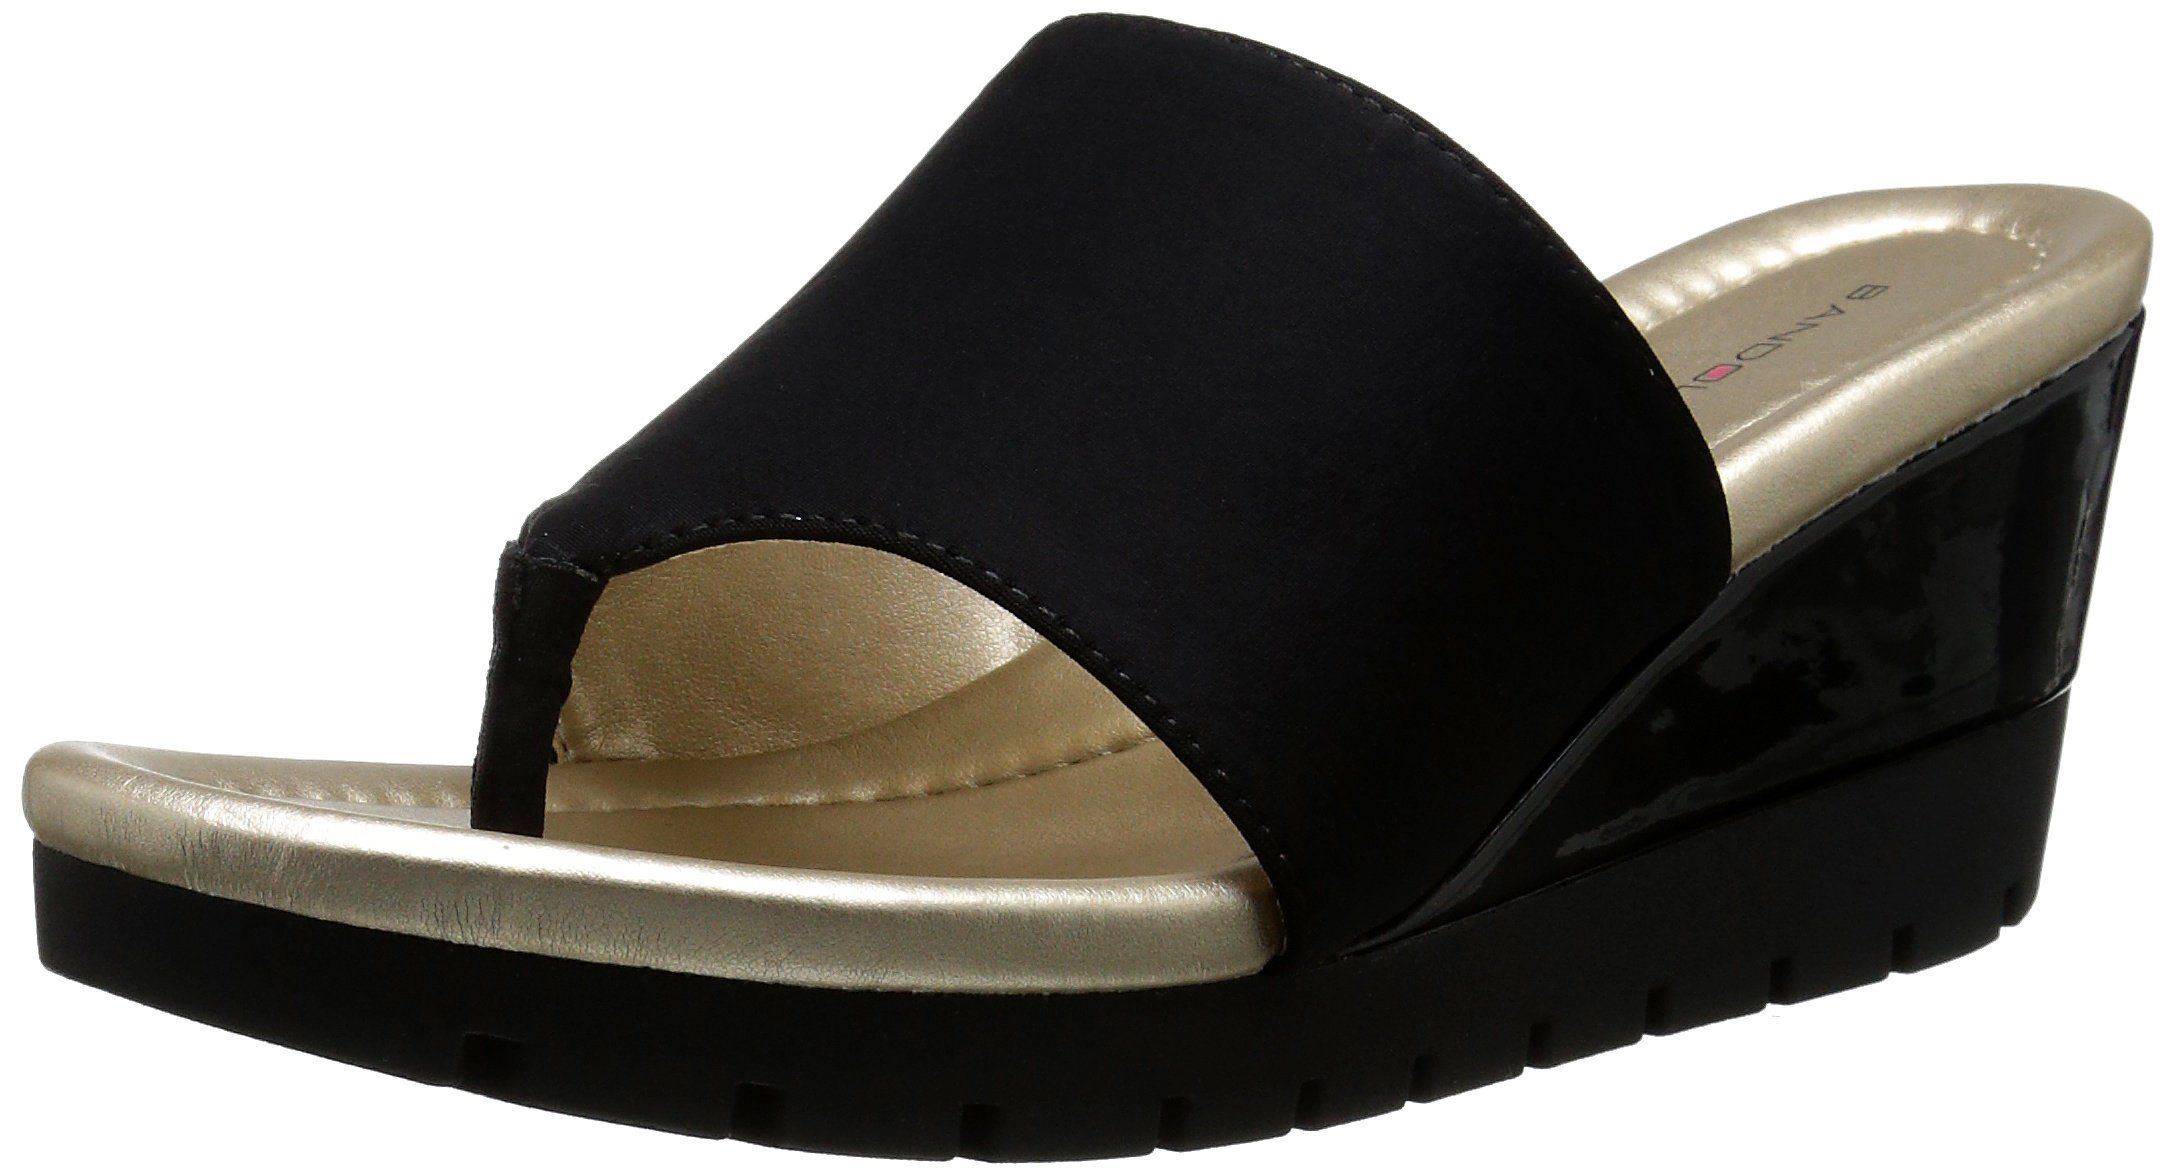 Bandolino Women's Meadoe Wedge Sandal, Black, 10 M US. Cushioned insole.